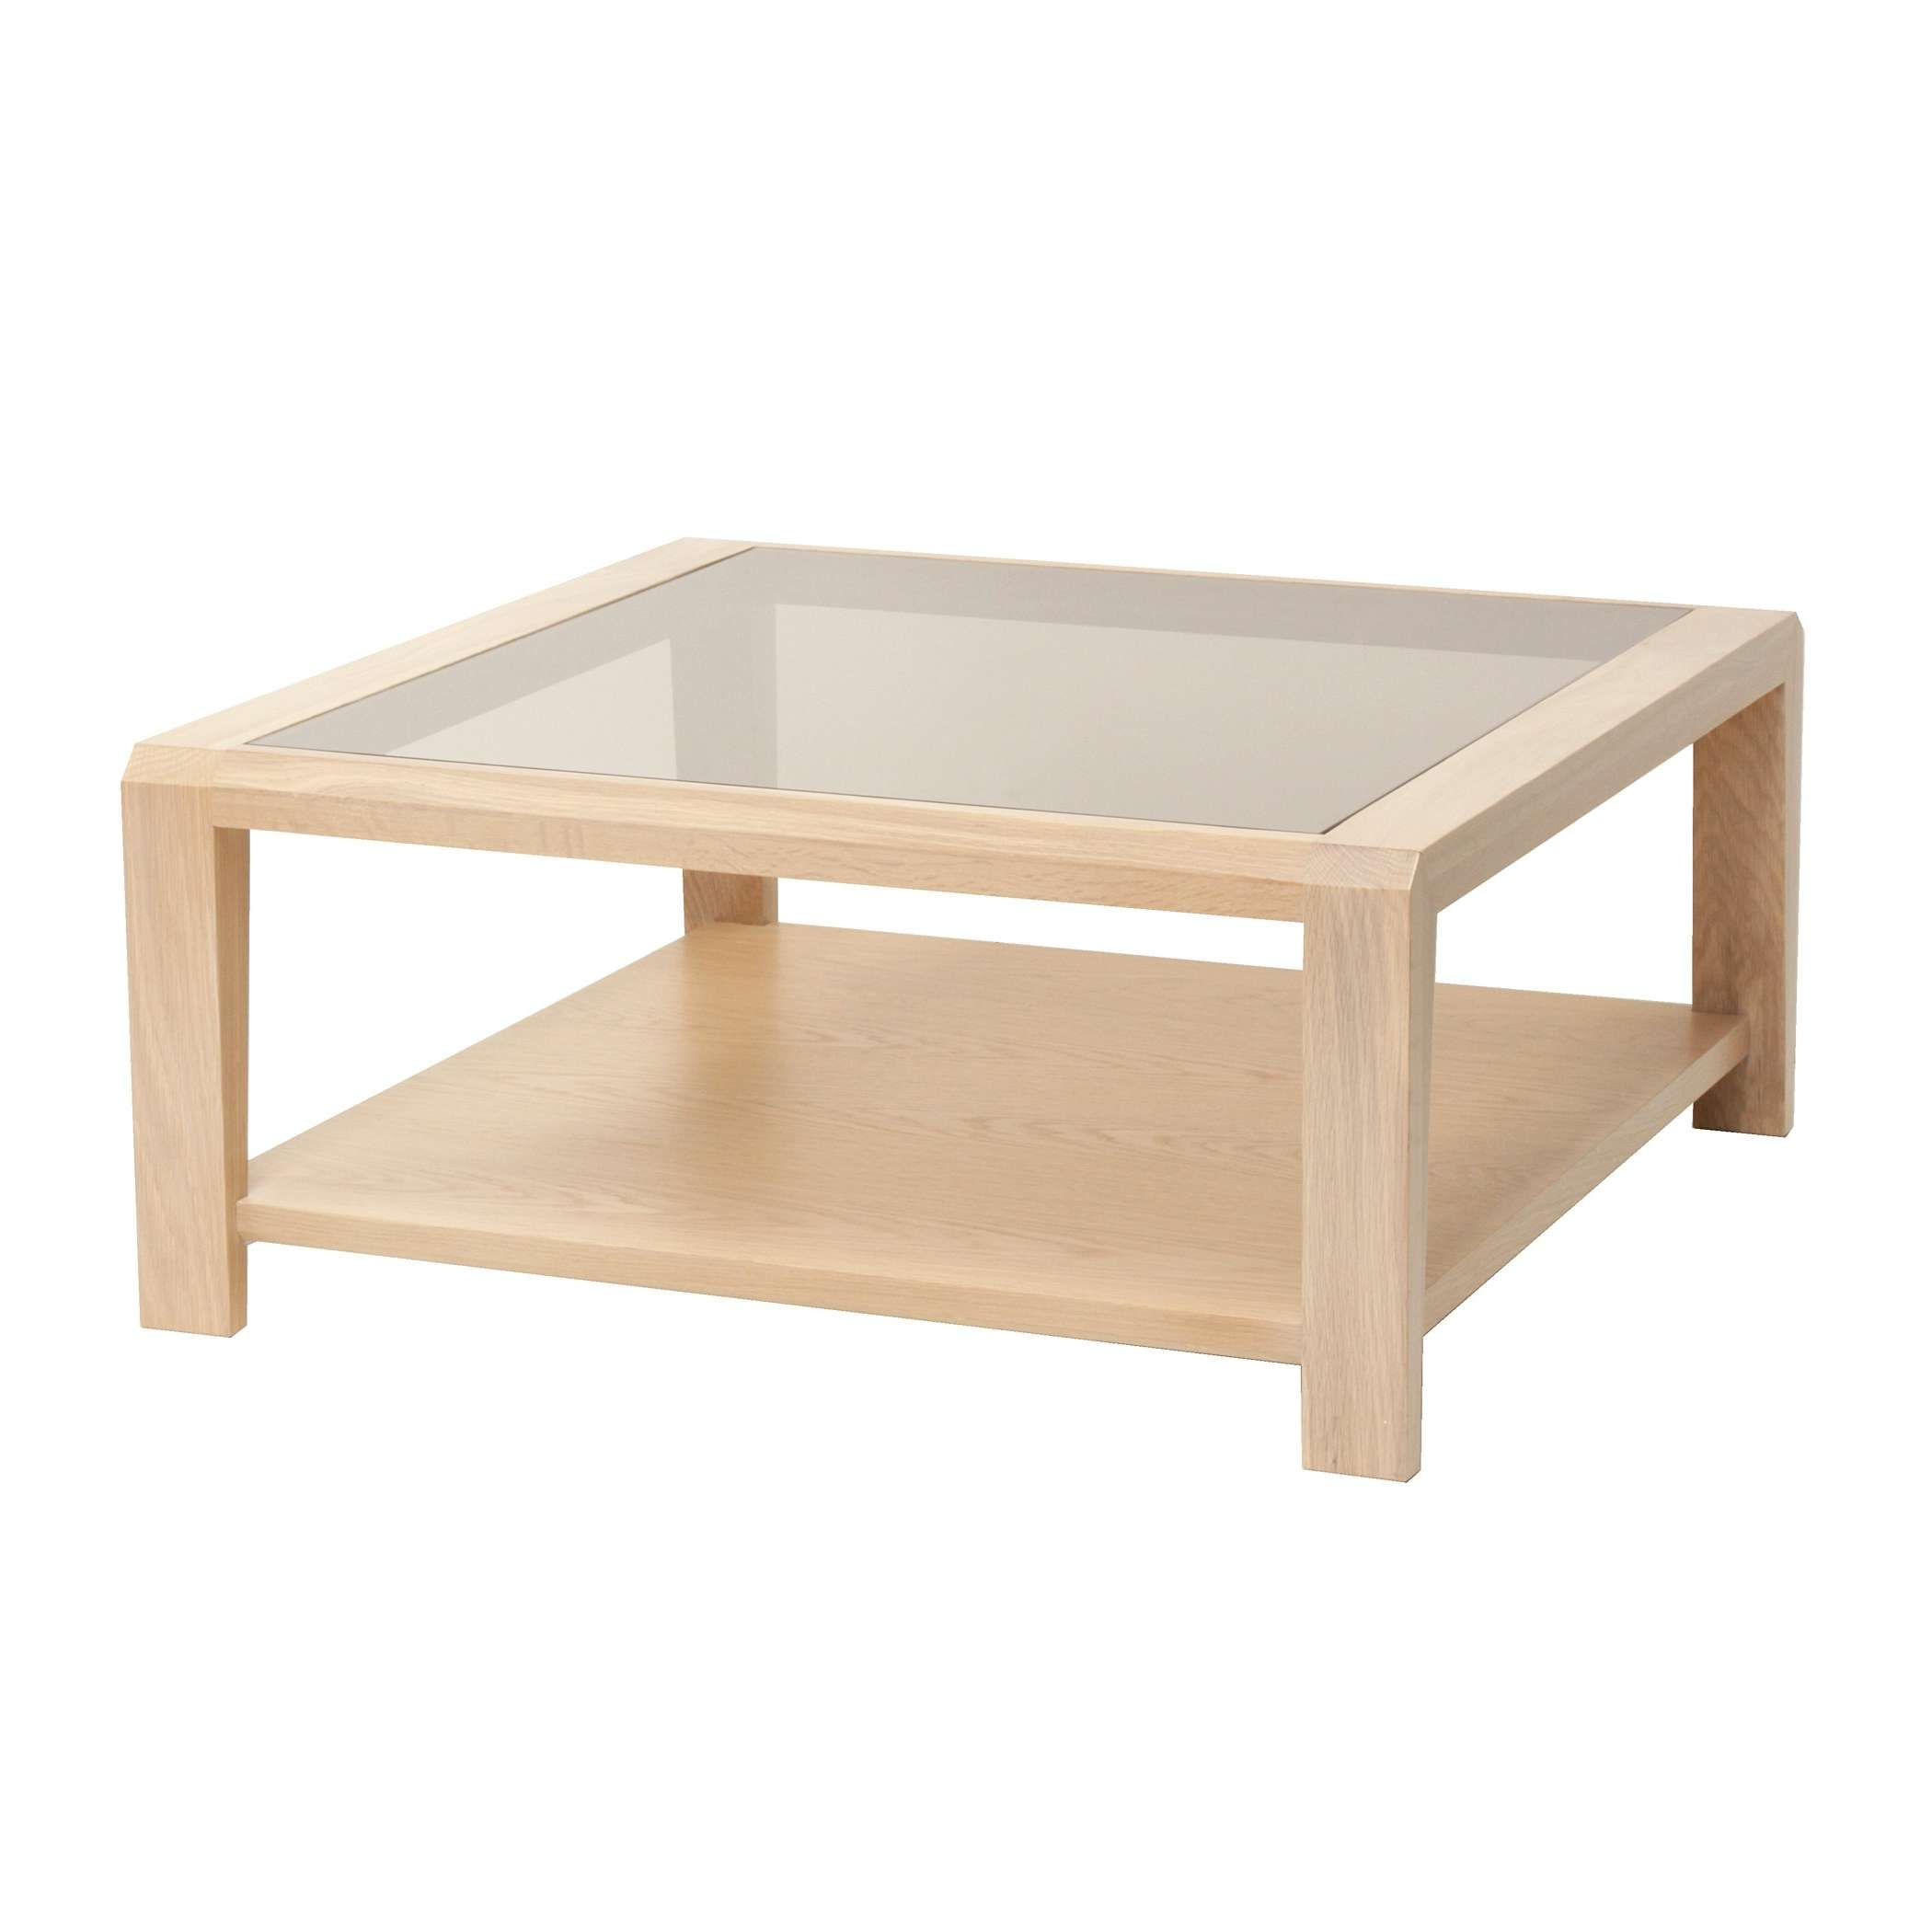 Favorite Large Square Glass Coffee Tables Inside Large Square Glass Coffee Table – Glass Coffee Table (View 14 of 20)